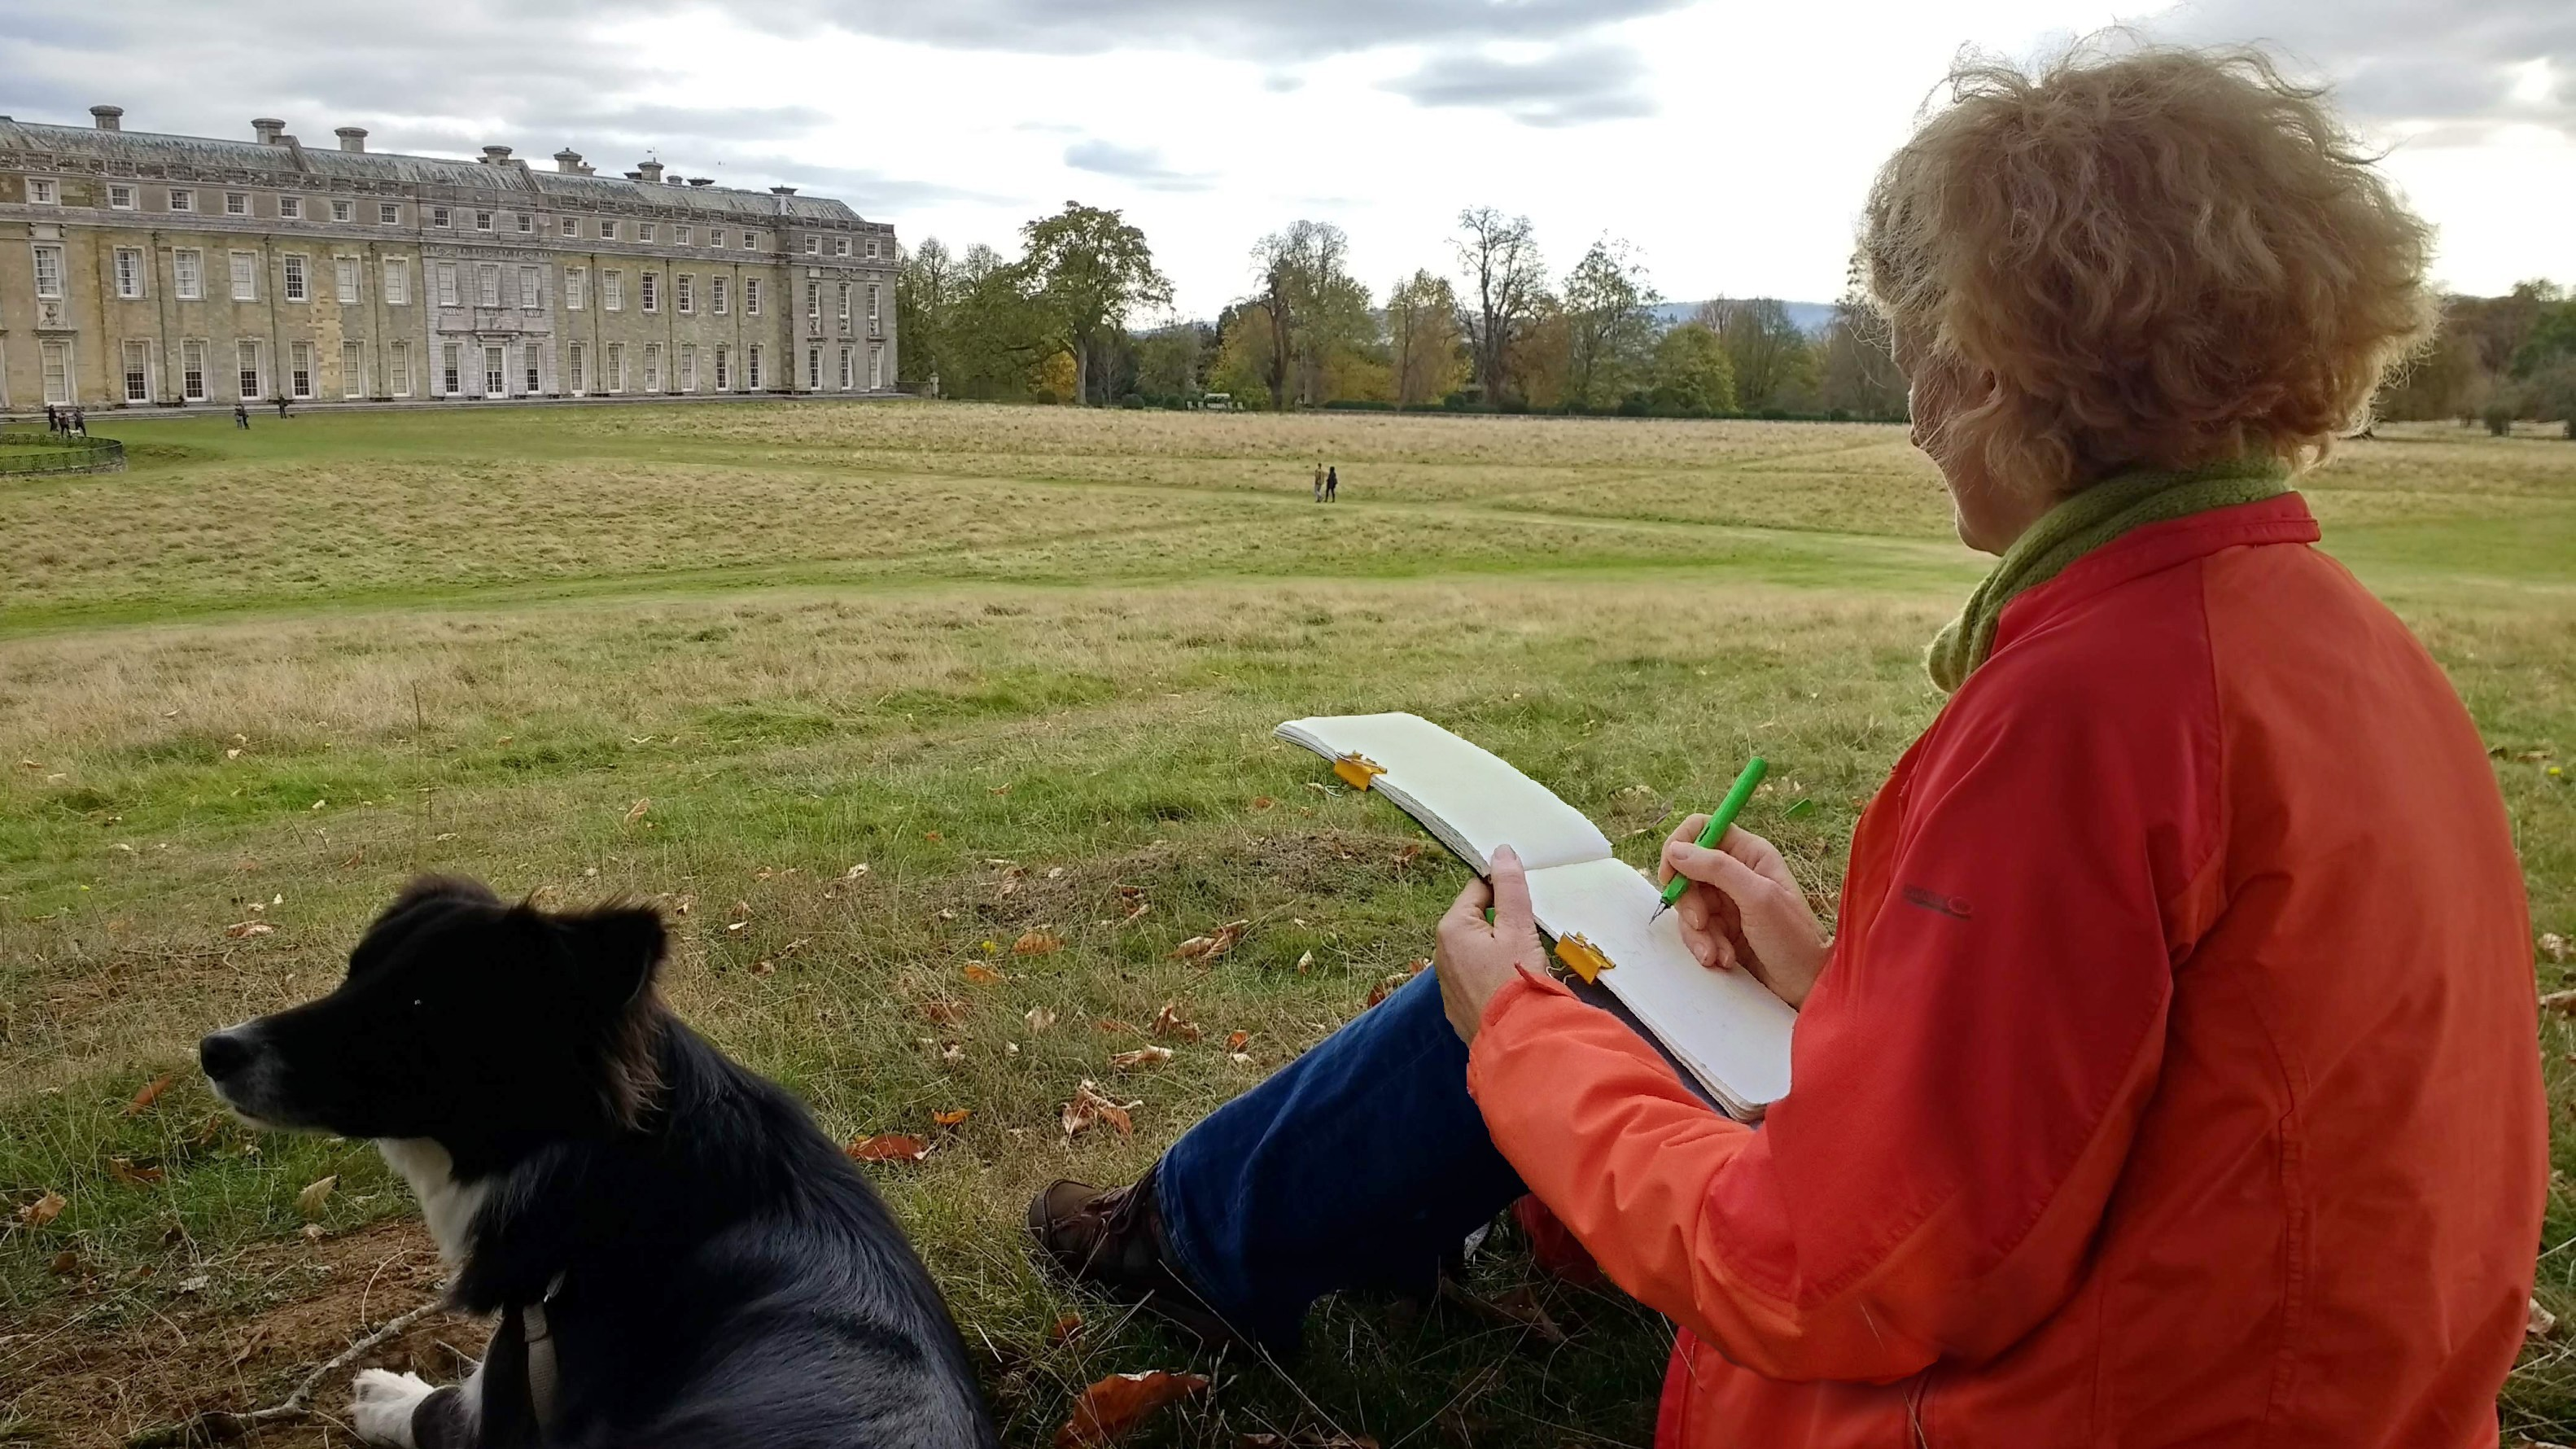 Out and about with a softback Stillman & Birn Sketchbook and an impatient collie.